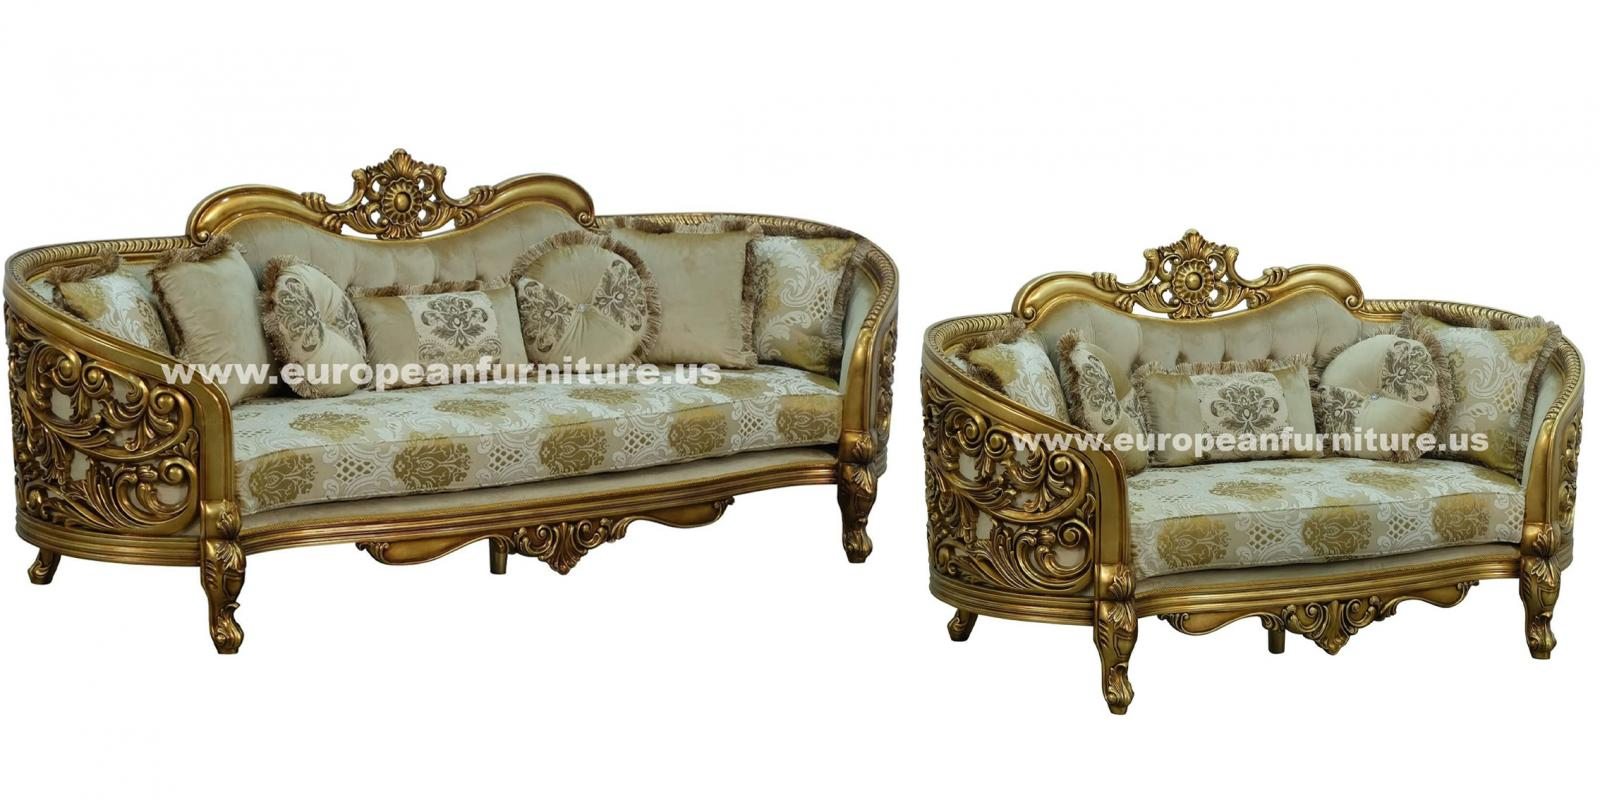 Classic, Traditional Beige, Bronze, Plum, Antique Fabric and Wood, Solid Hardwood Sofa Set 3016 BELLAGIO  by European Furniture